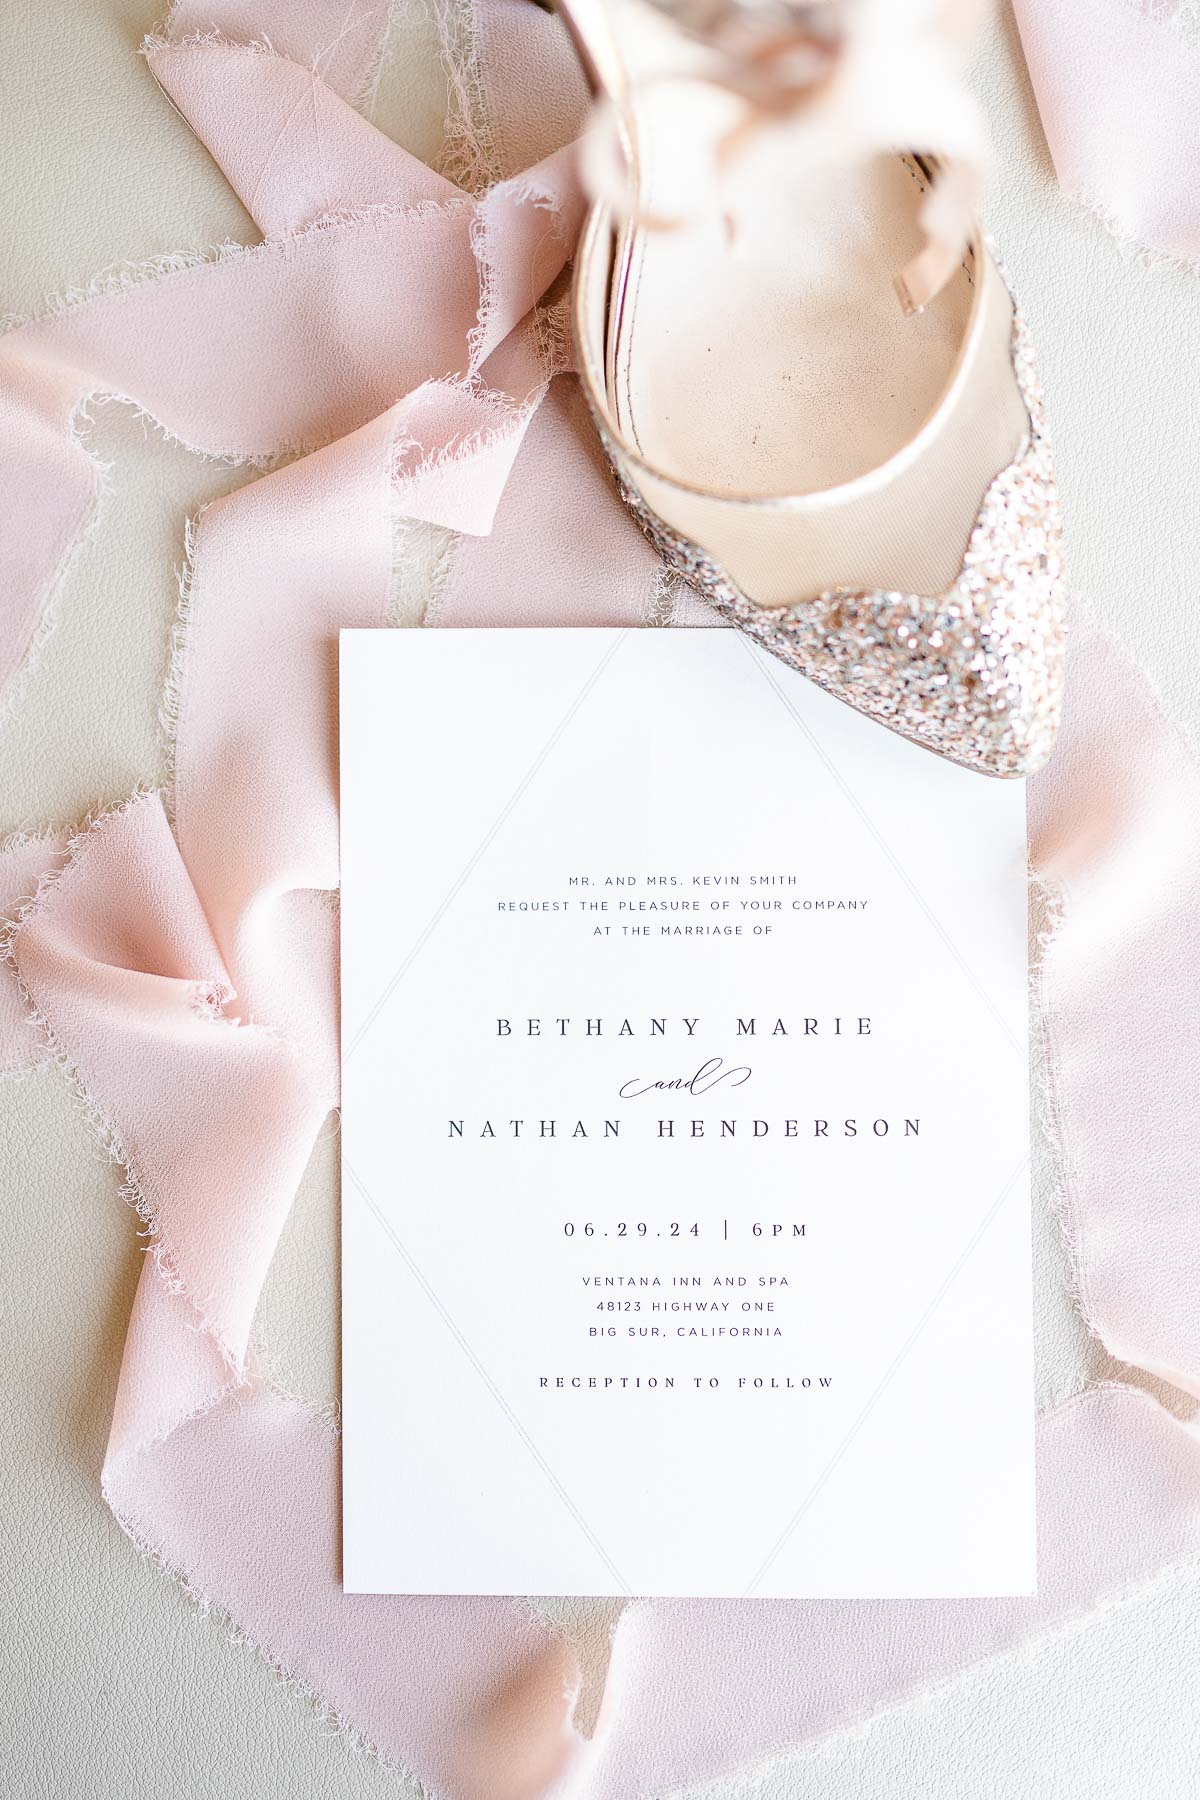 Sparkly Champaign-colored wedding shoes on invitation with pink silk ribbon